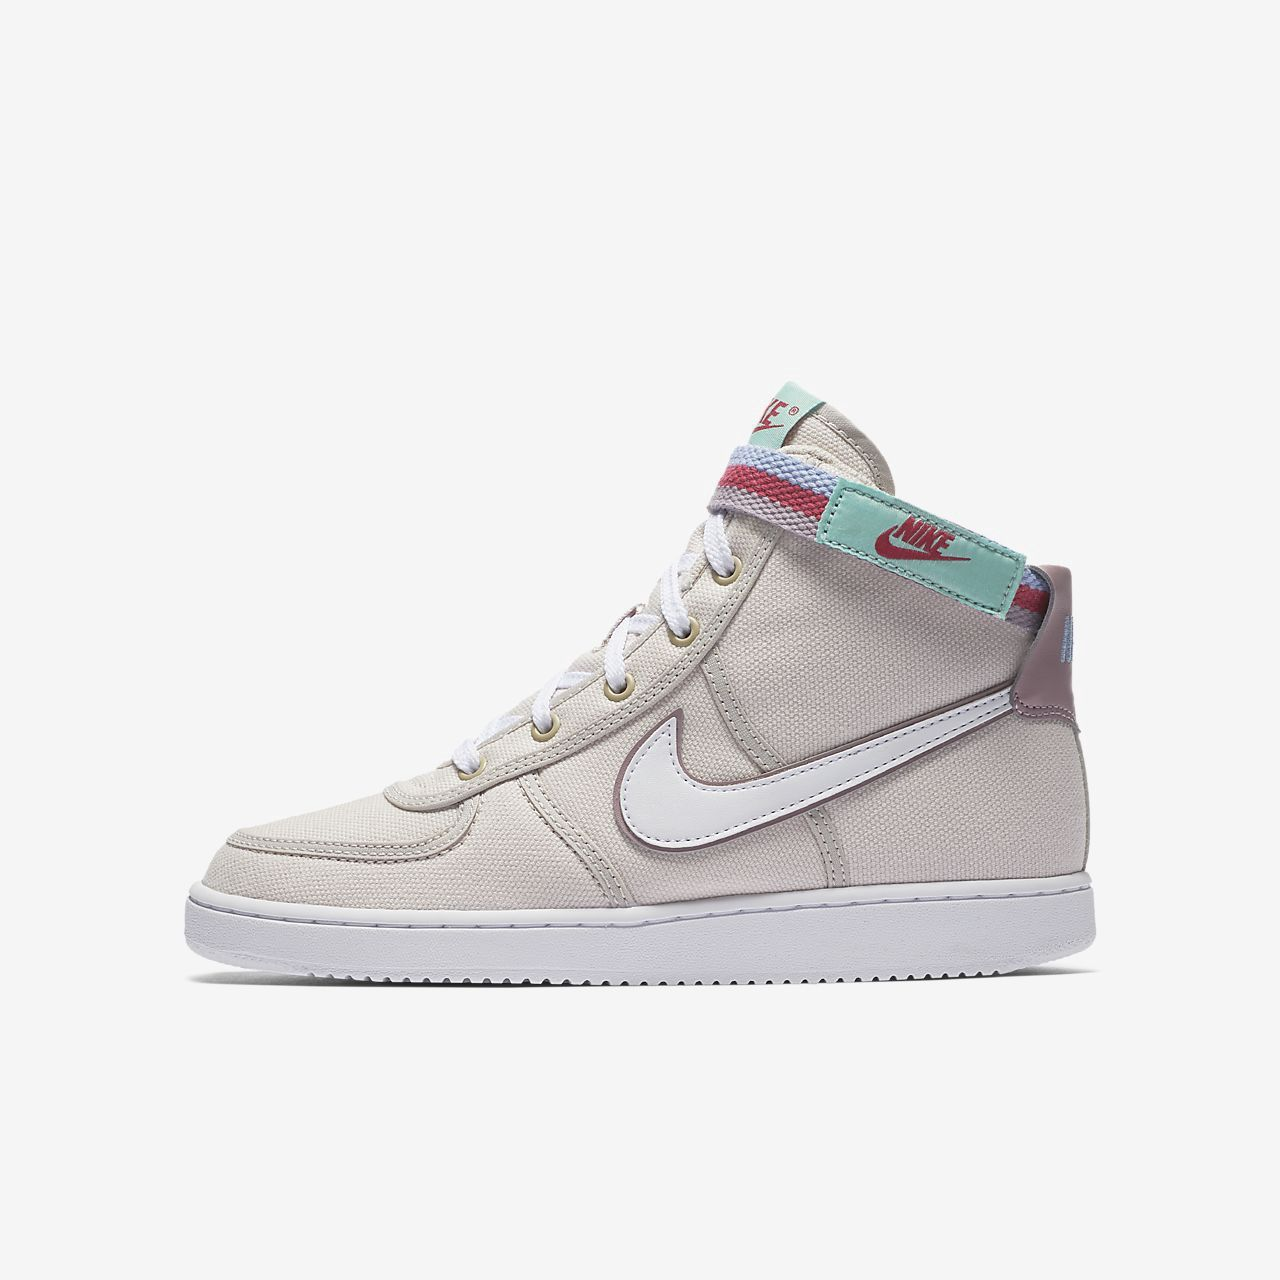 4f03b5e4ba65 Nike Vandal High Supreme Big Kids  Shoe - 3.5Y